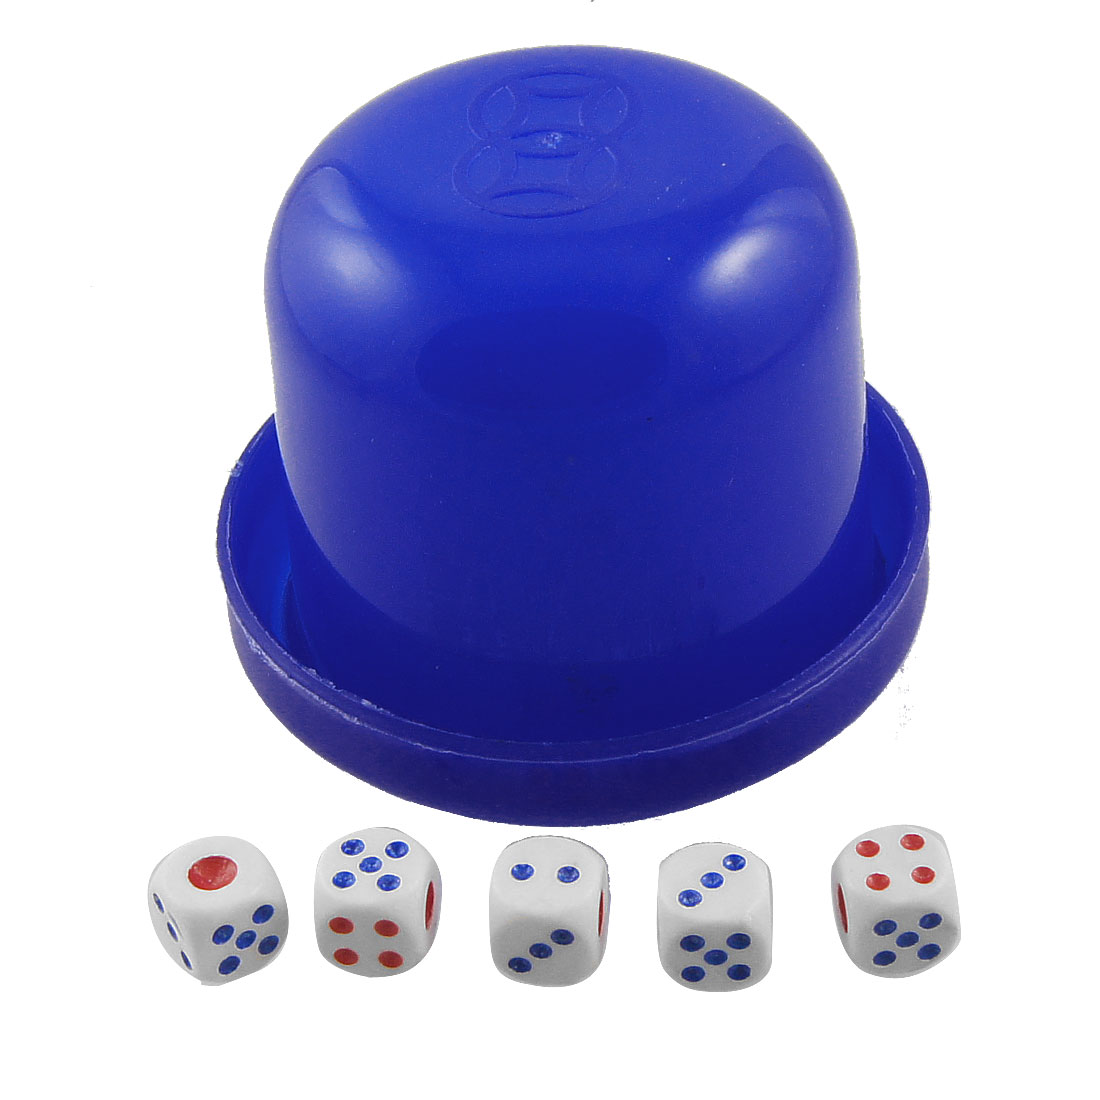 Family Party Dark Blue Plastic Dice Cup Game Toy w 5 Dices